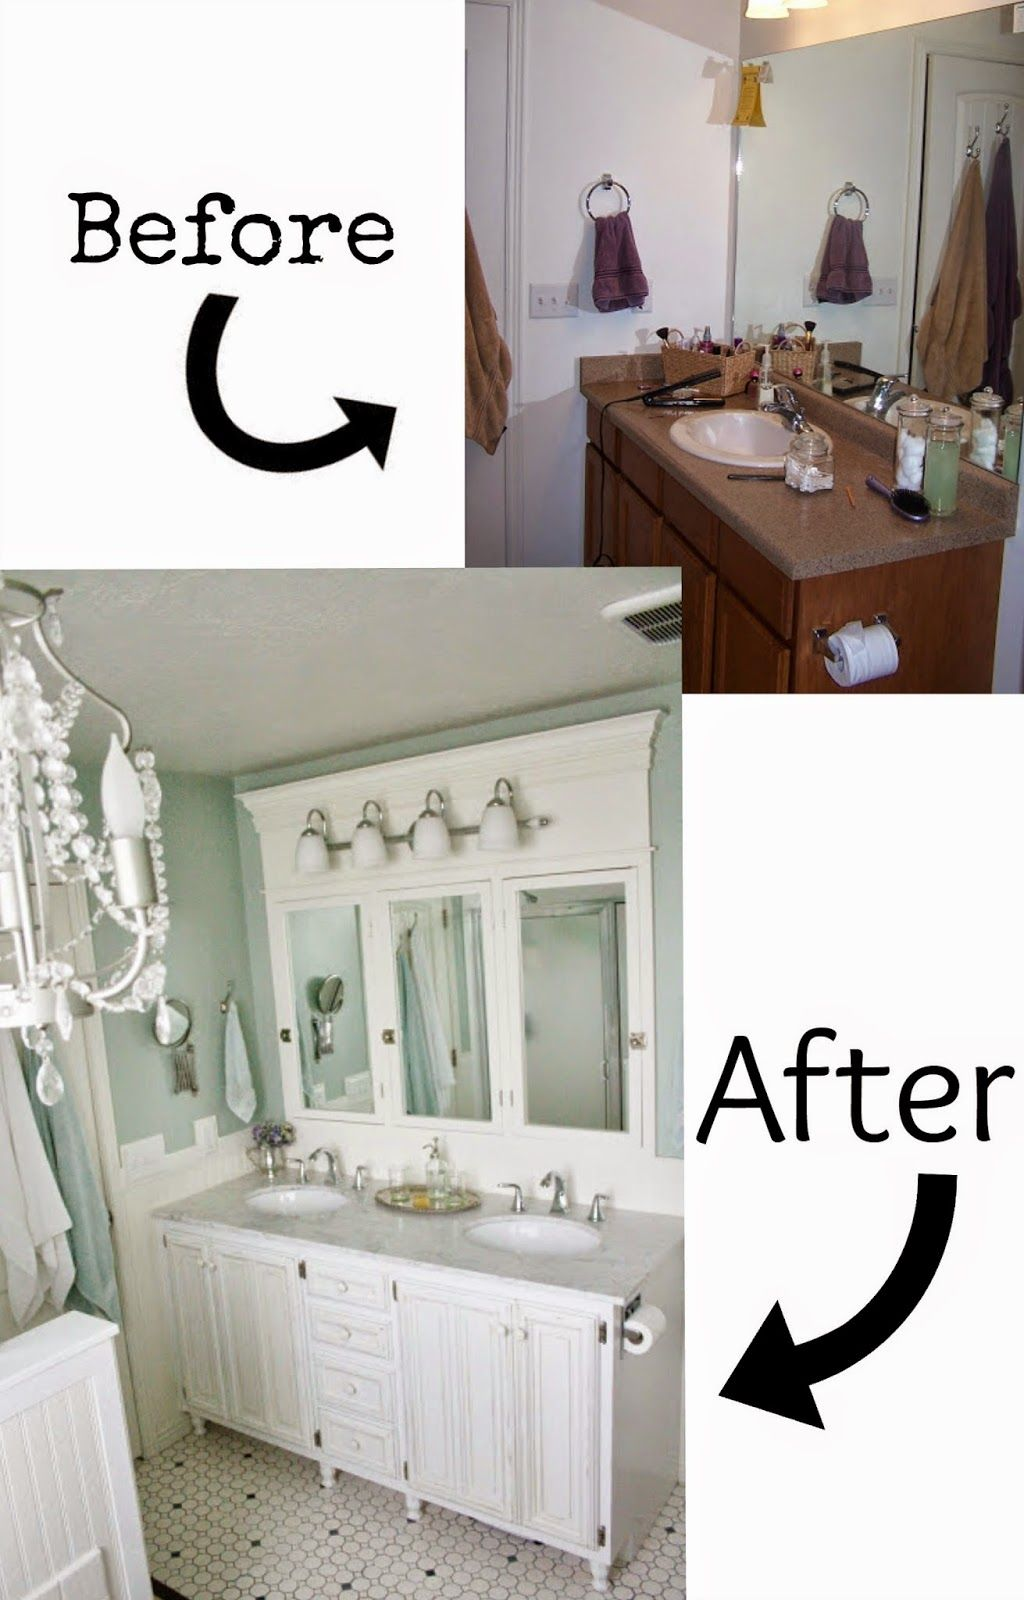 Pneumatic Addict : 7 Best DIY Bathroom Vanity Makeovers | Bath ideas ...